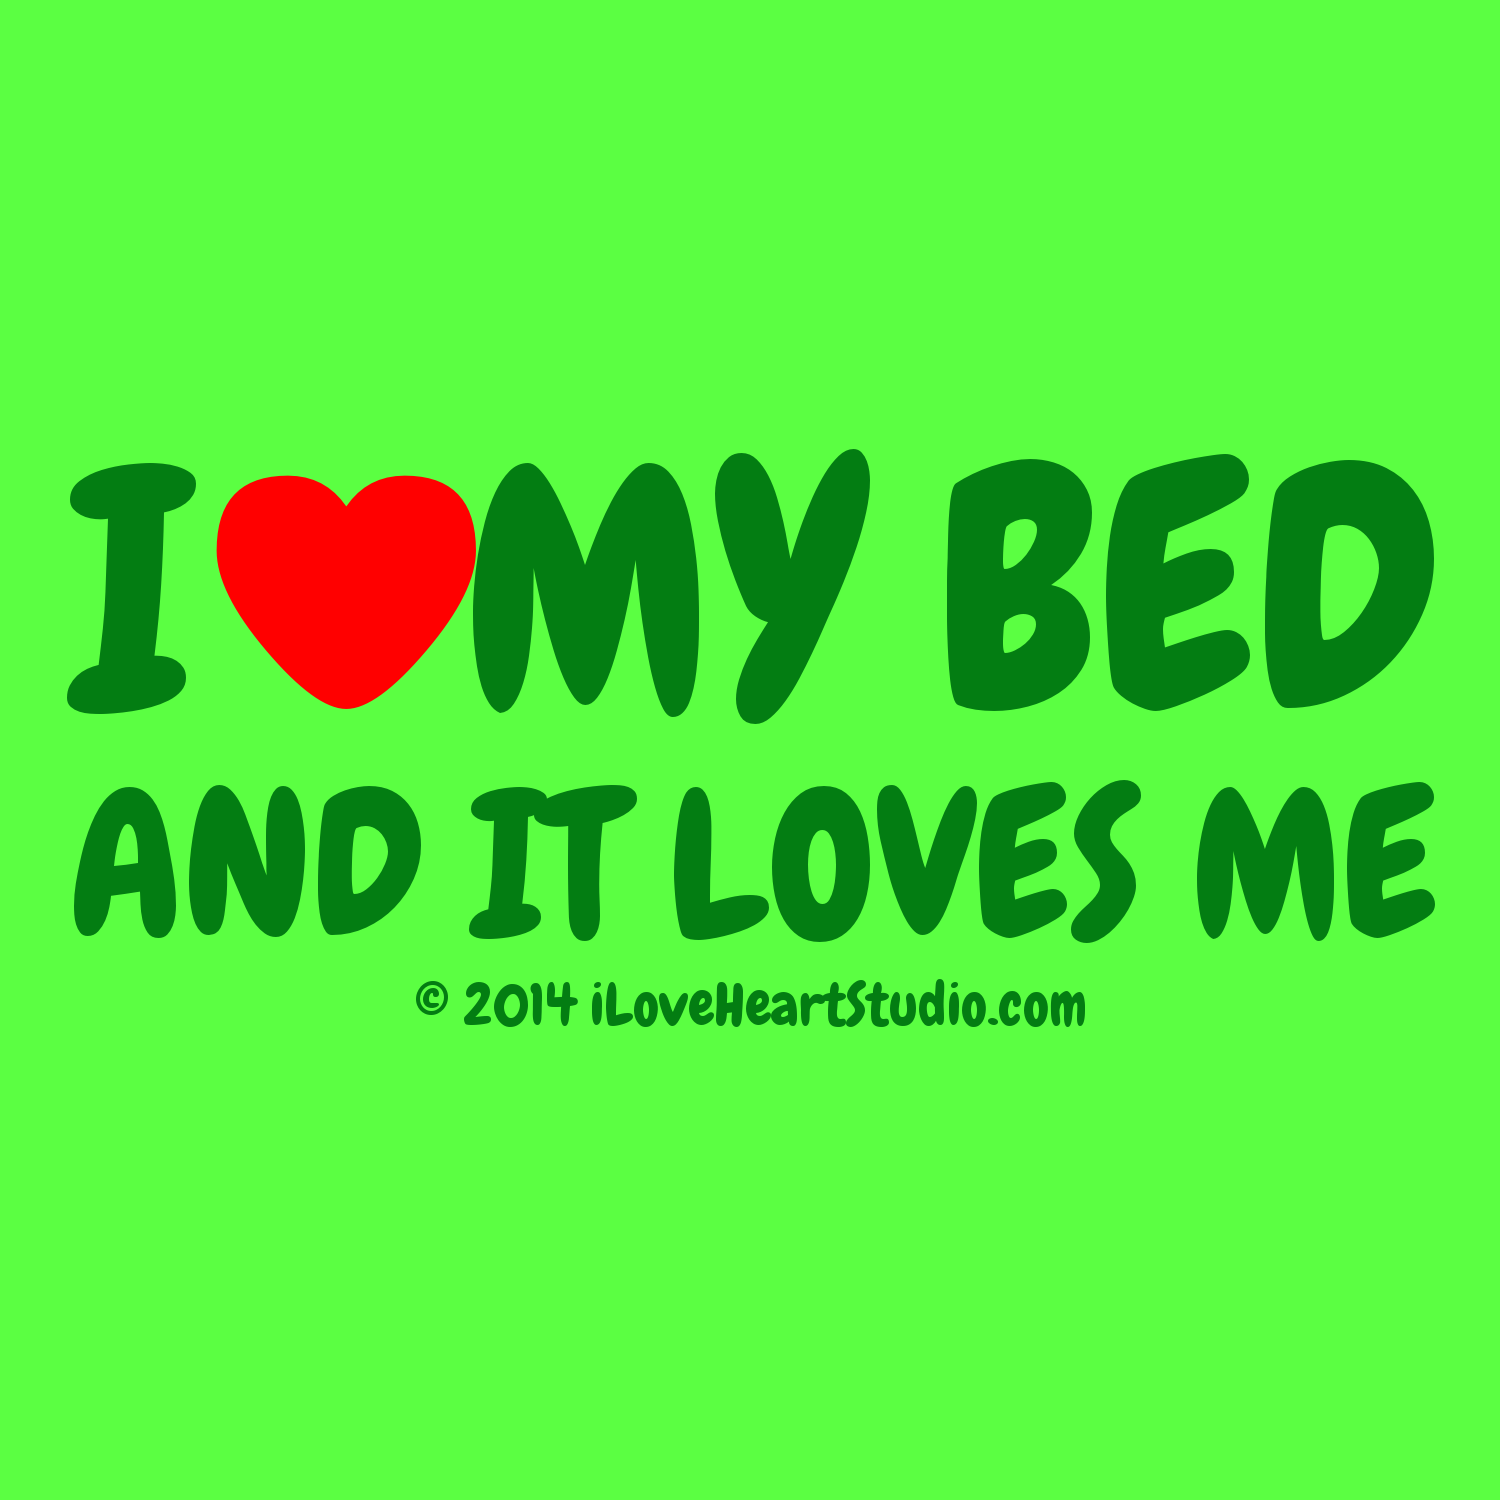 I Love My Bed i [love heart] my bed and it loves me' design on t-shirt, poster